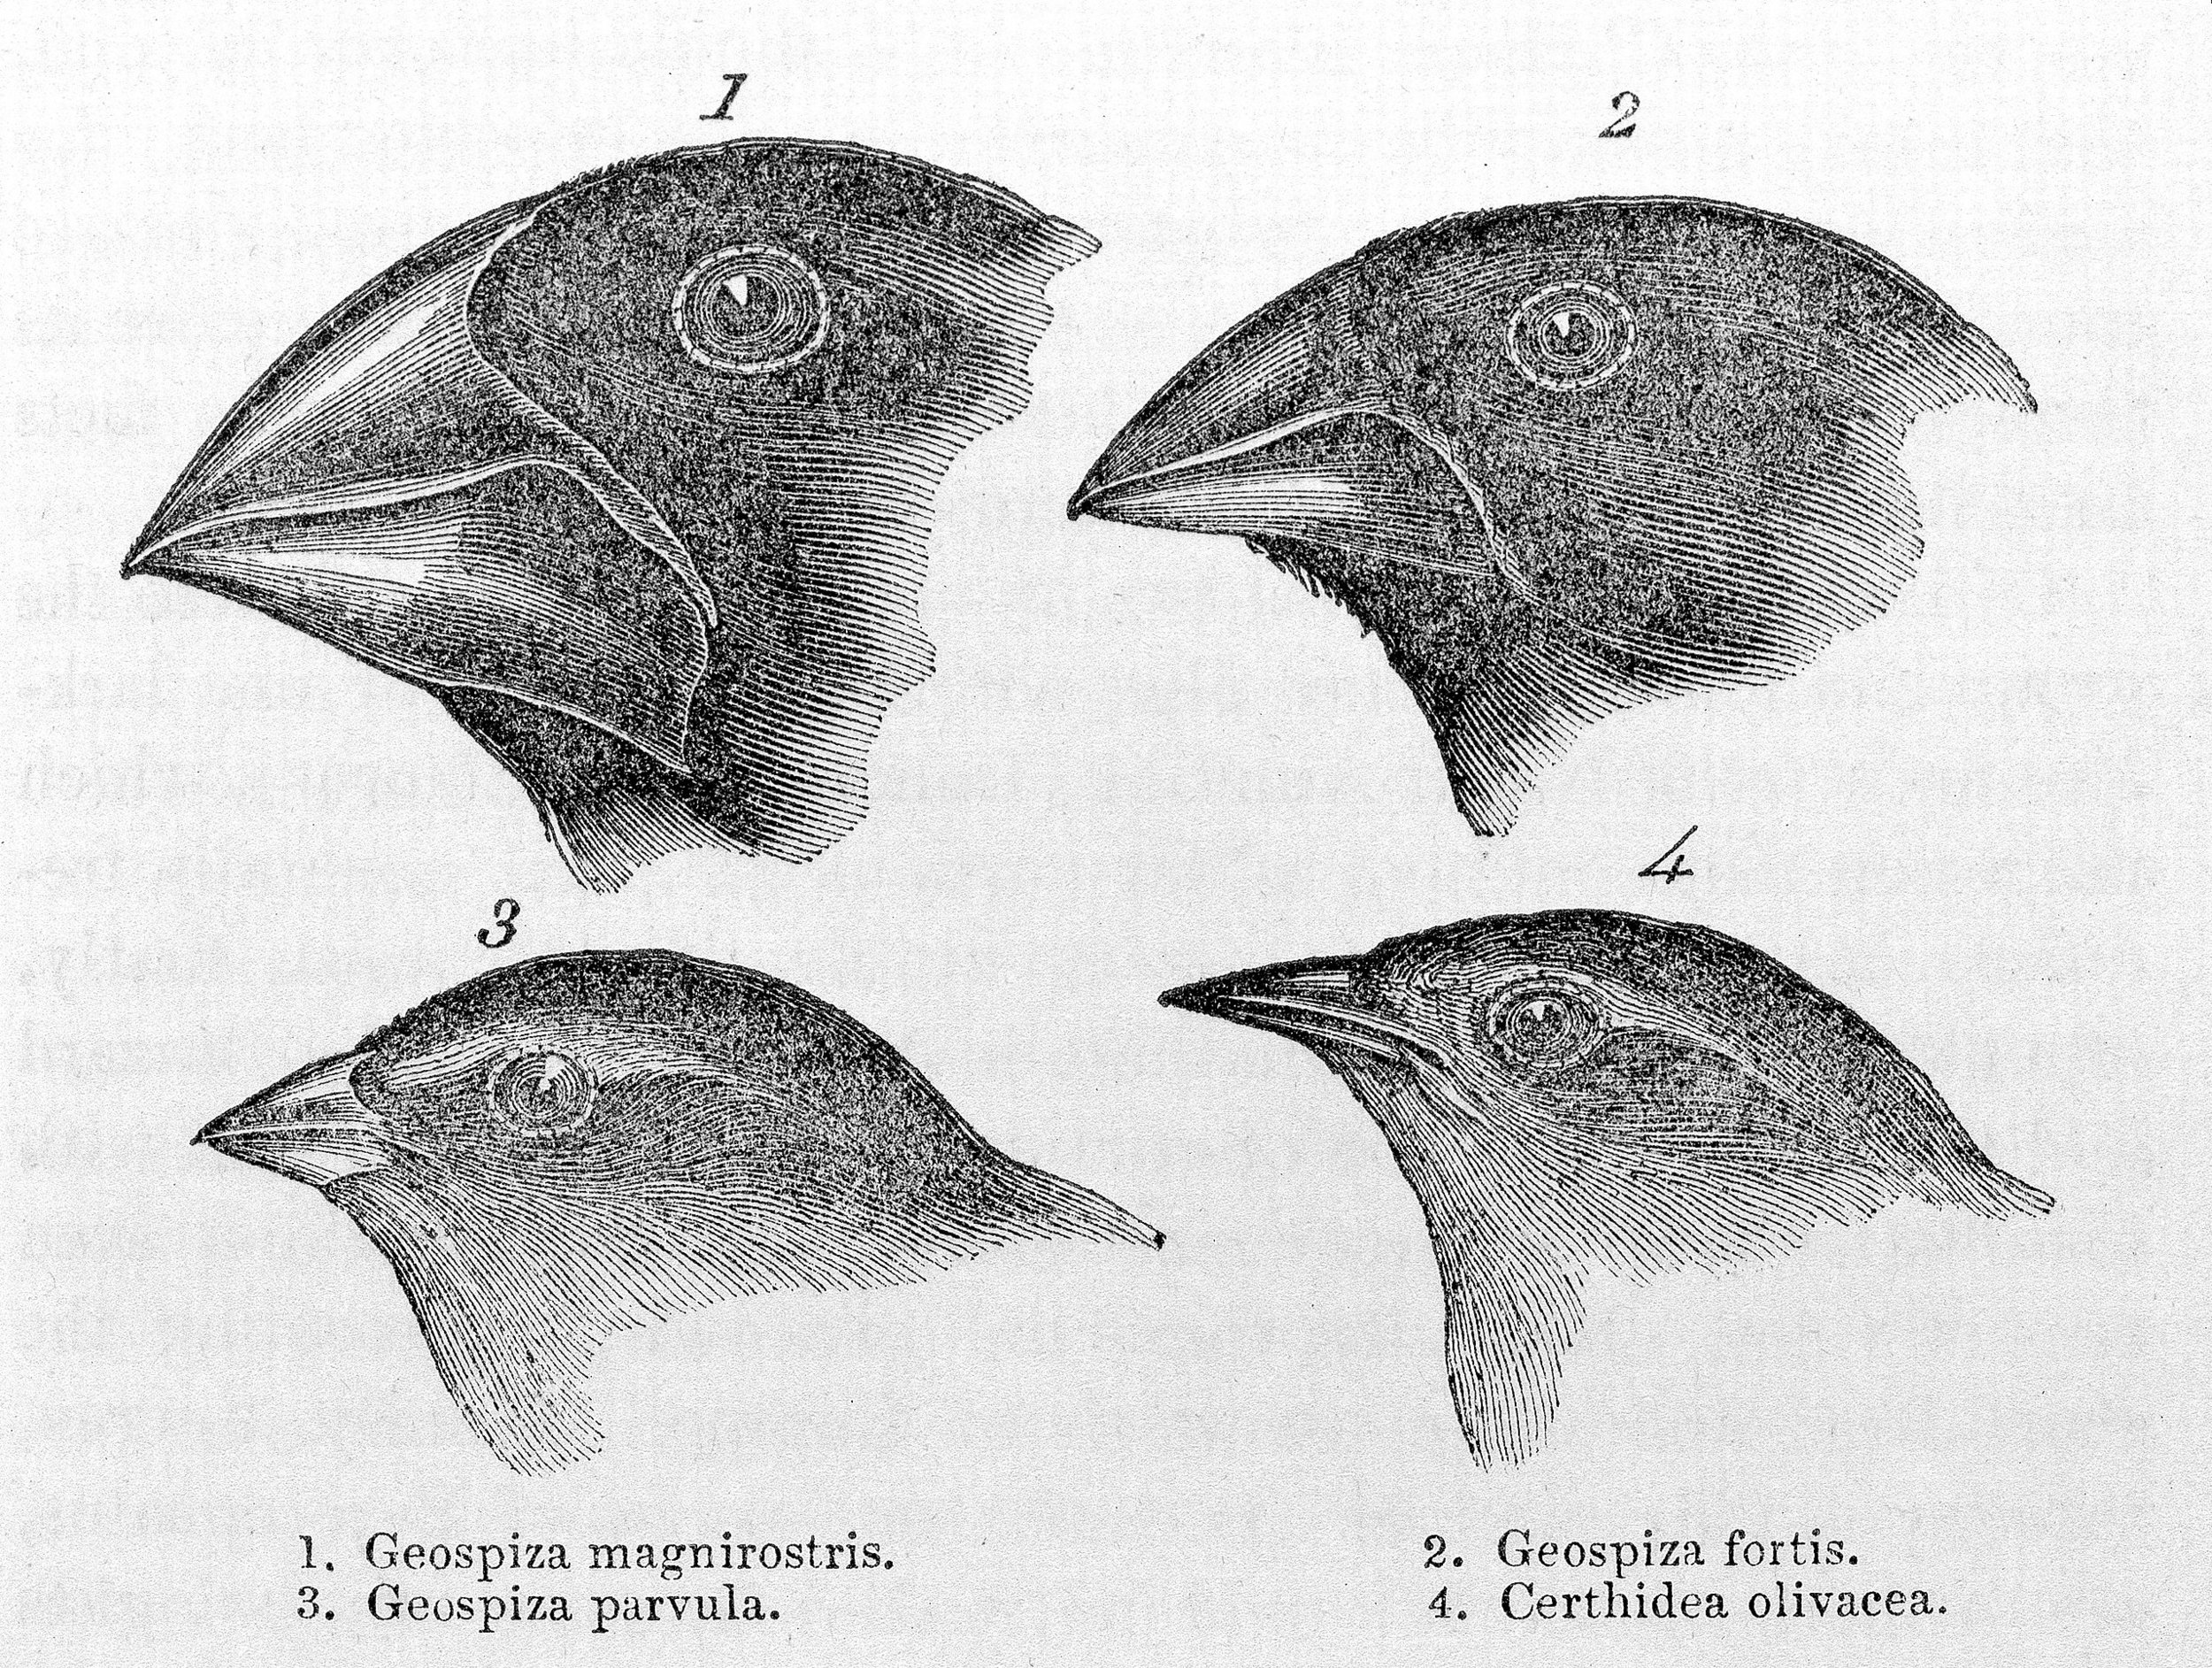 """Source: Charles Darwin. 1845. """"Journal of researches into the geology and natural history of the various countries visited by H.M.S. Beagle."""""""